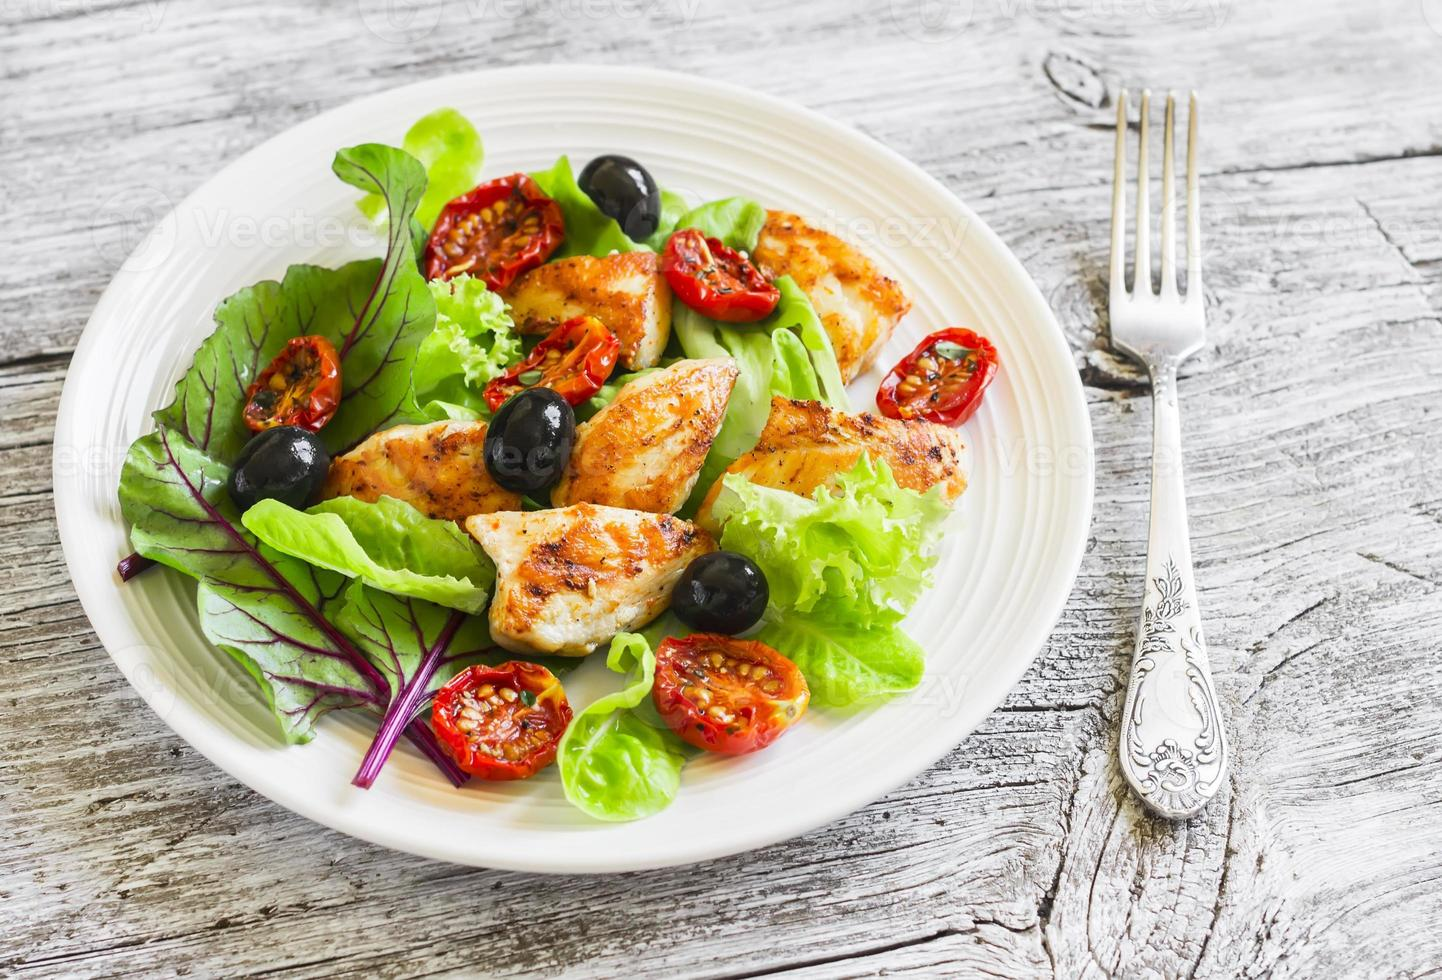 Fresh salad with chicken breast, sun-dried tomatoes, green salad photo